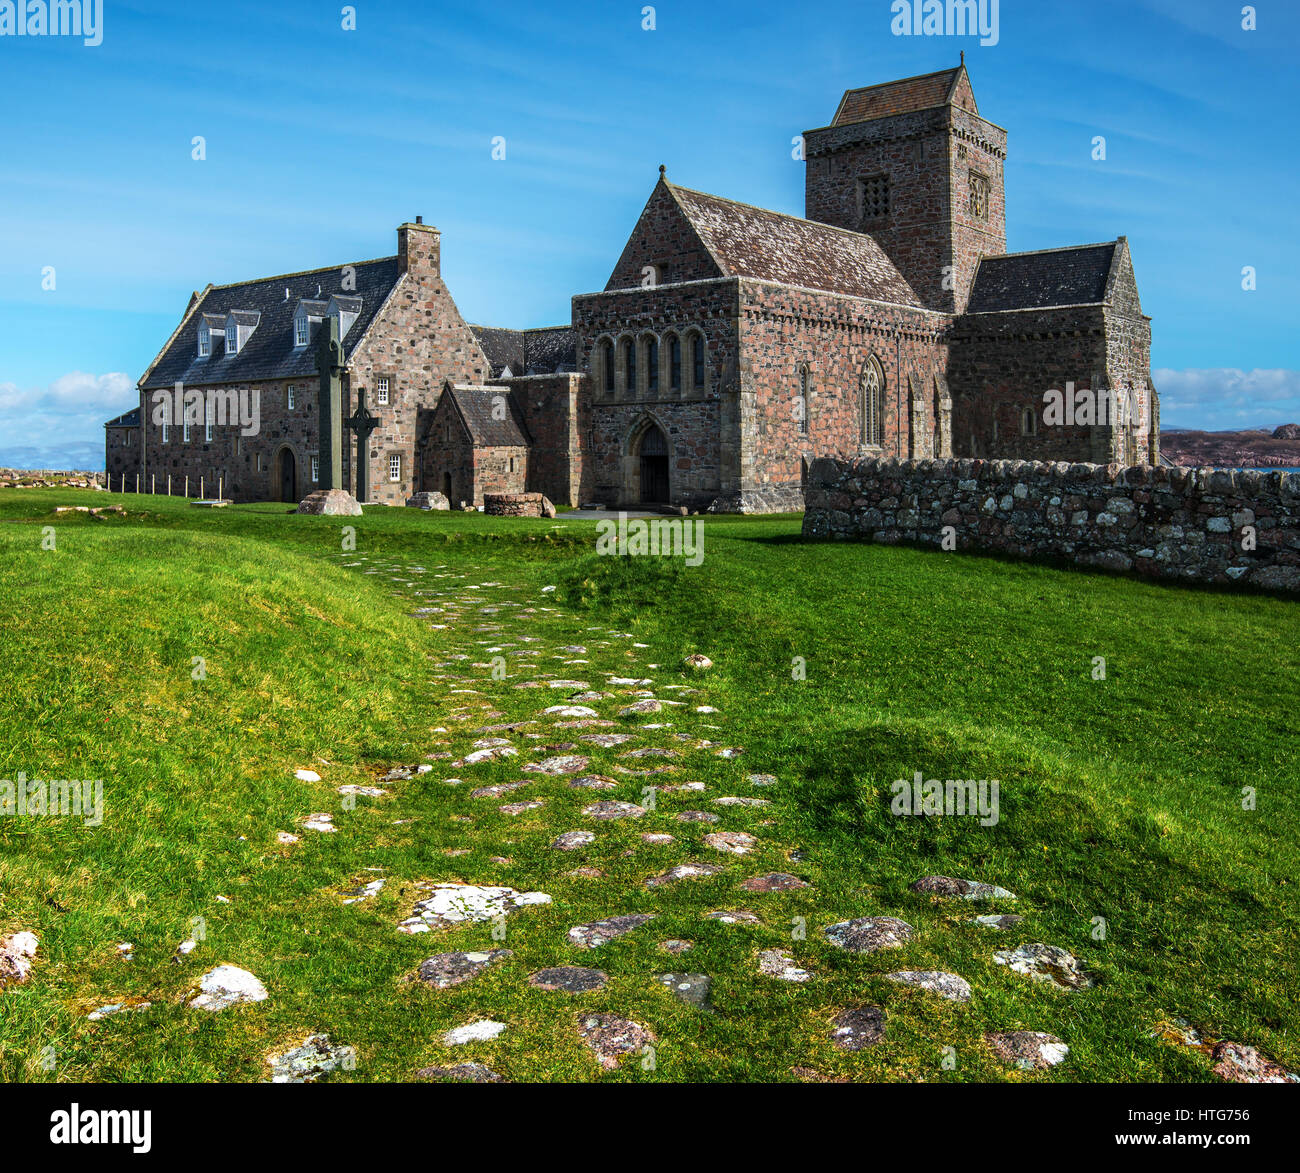 Iona Abbey burial place for kings on the island of Iona western Scotland founded by st. Columba in 563 one of Scotlands - Stock Image